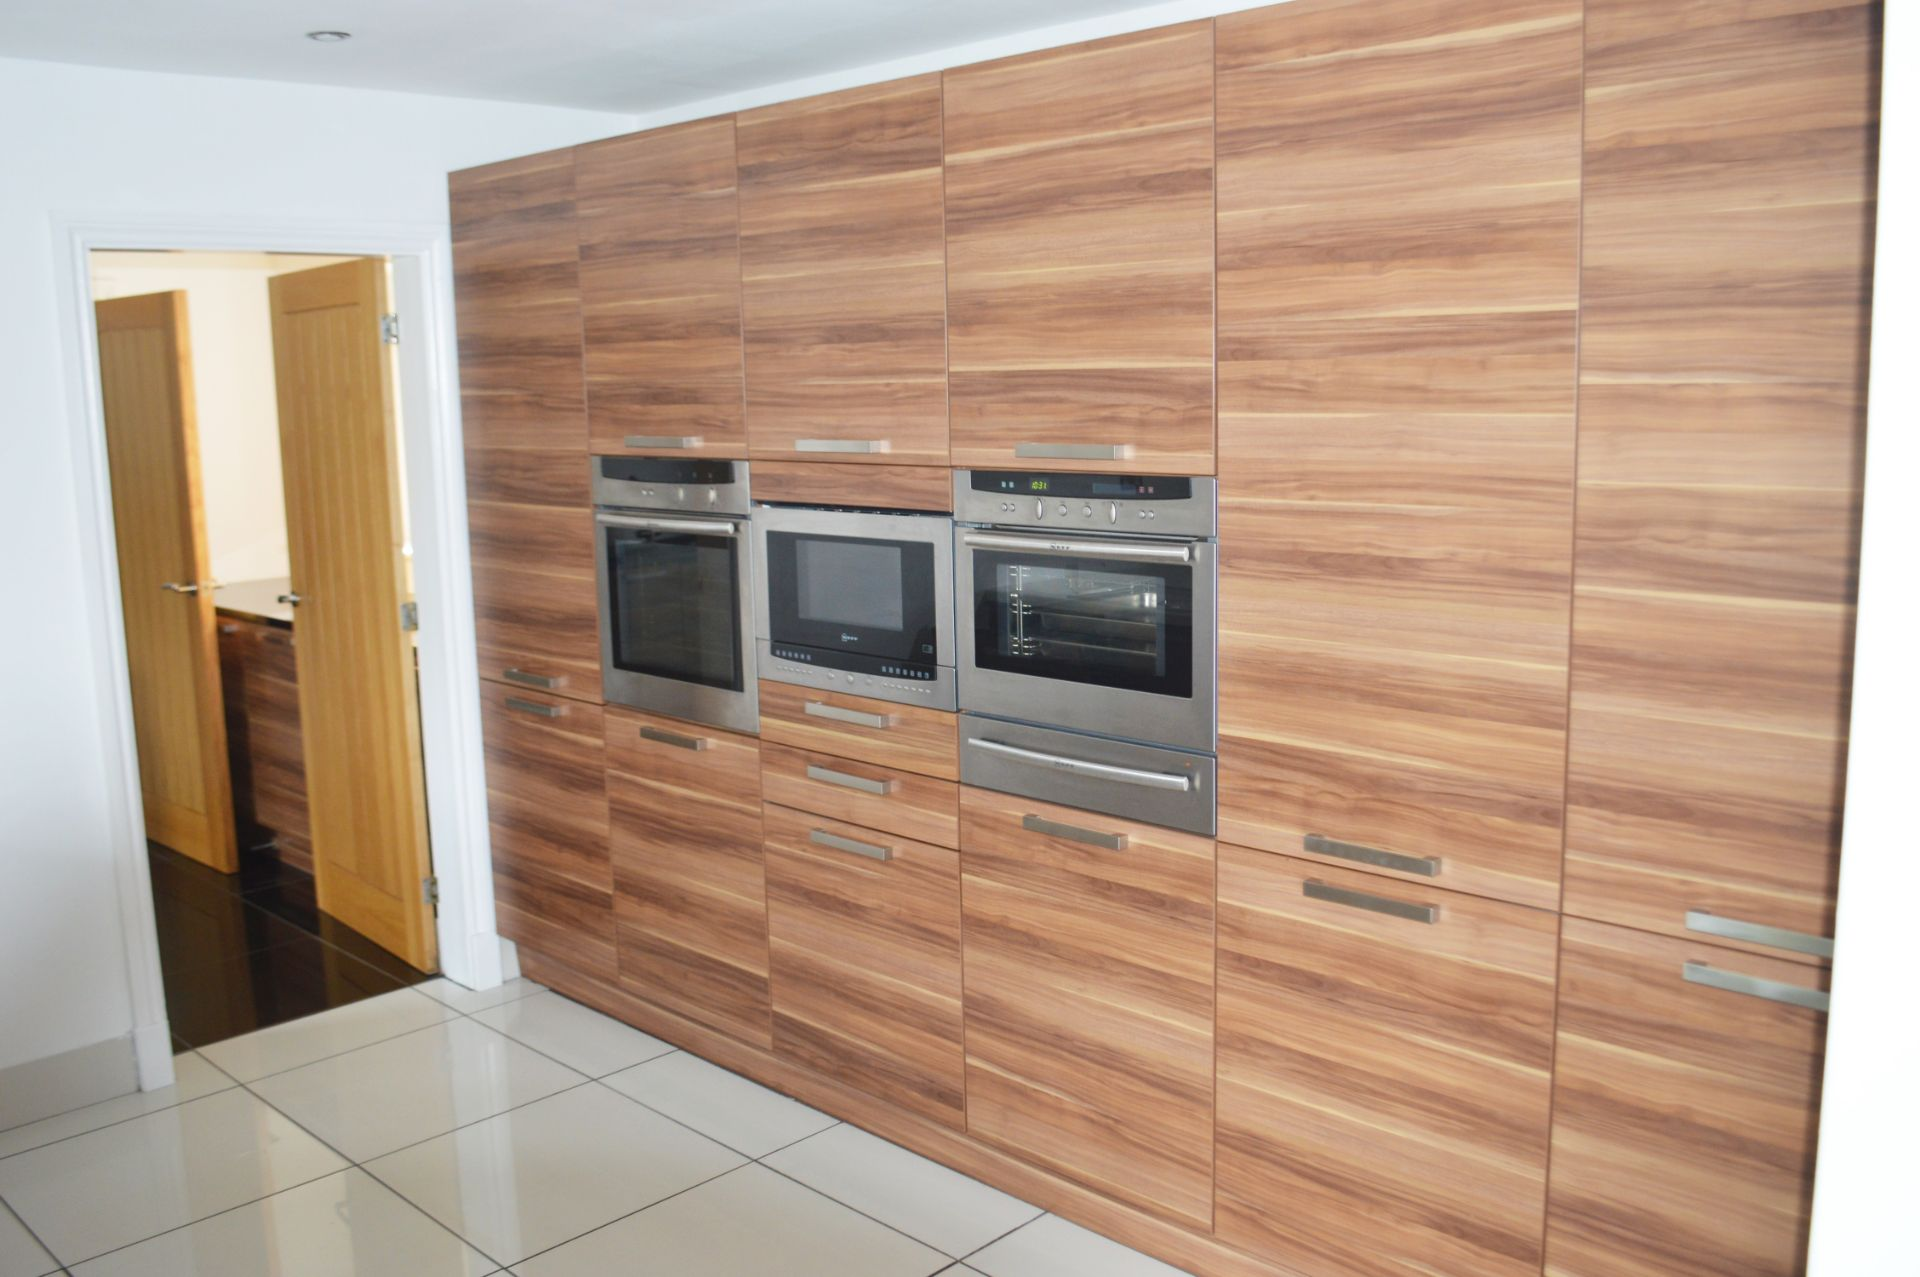 1 x Contemporary Bespoke Fitted Kitchen With Integrated Neff Branded Appliances, Quartz Worktops - Image 48 of 52